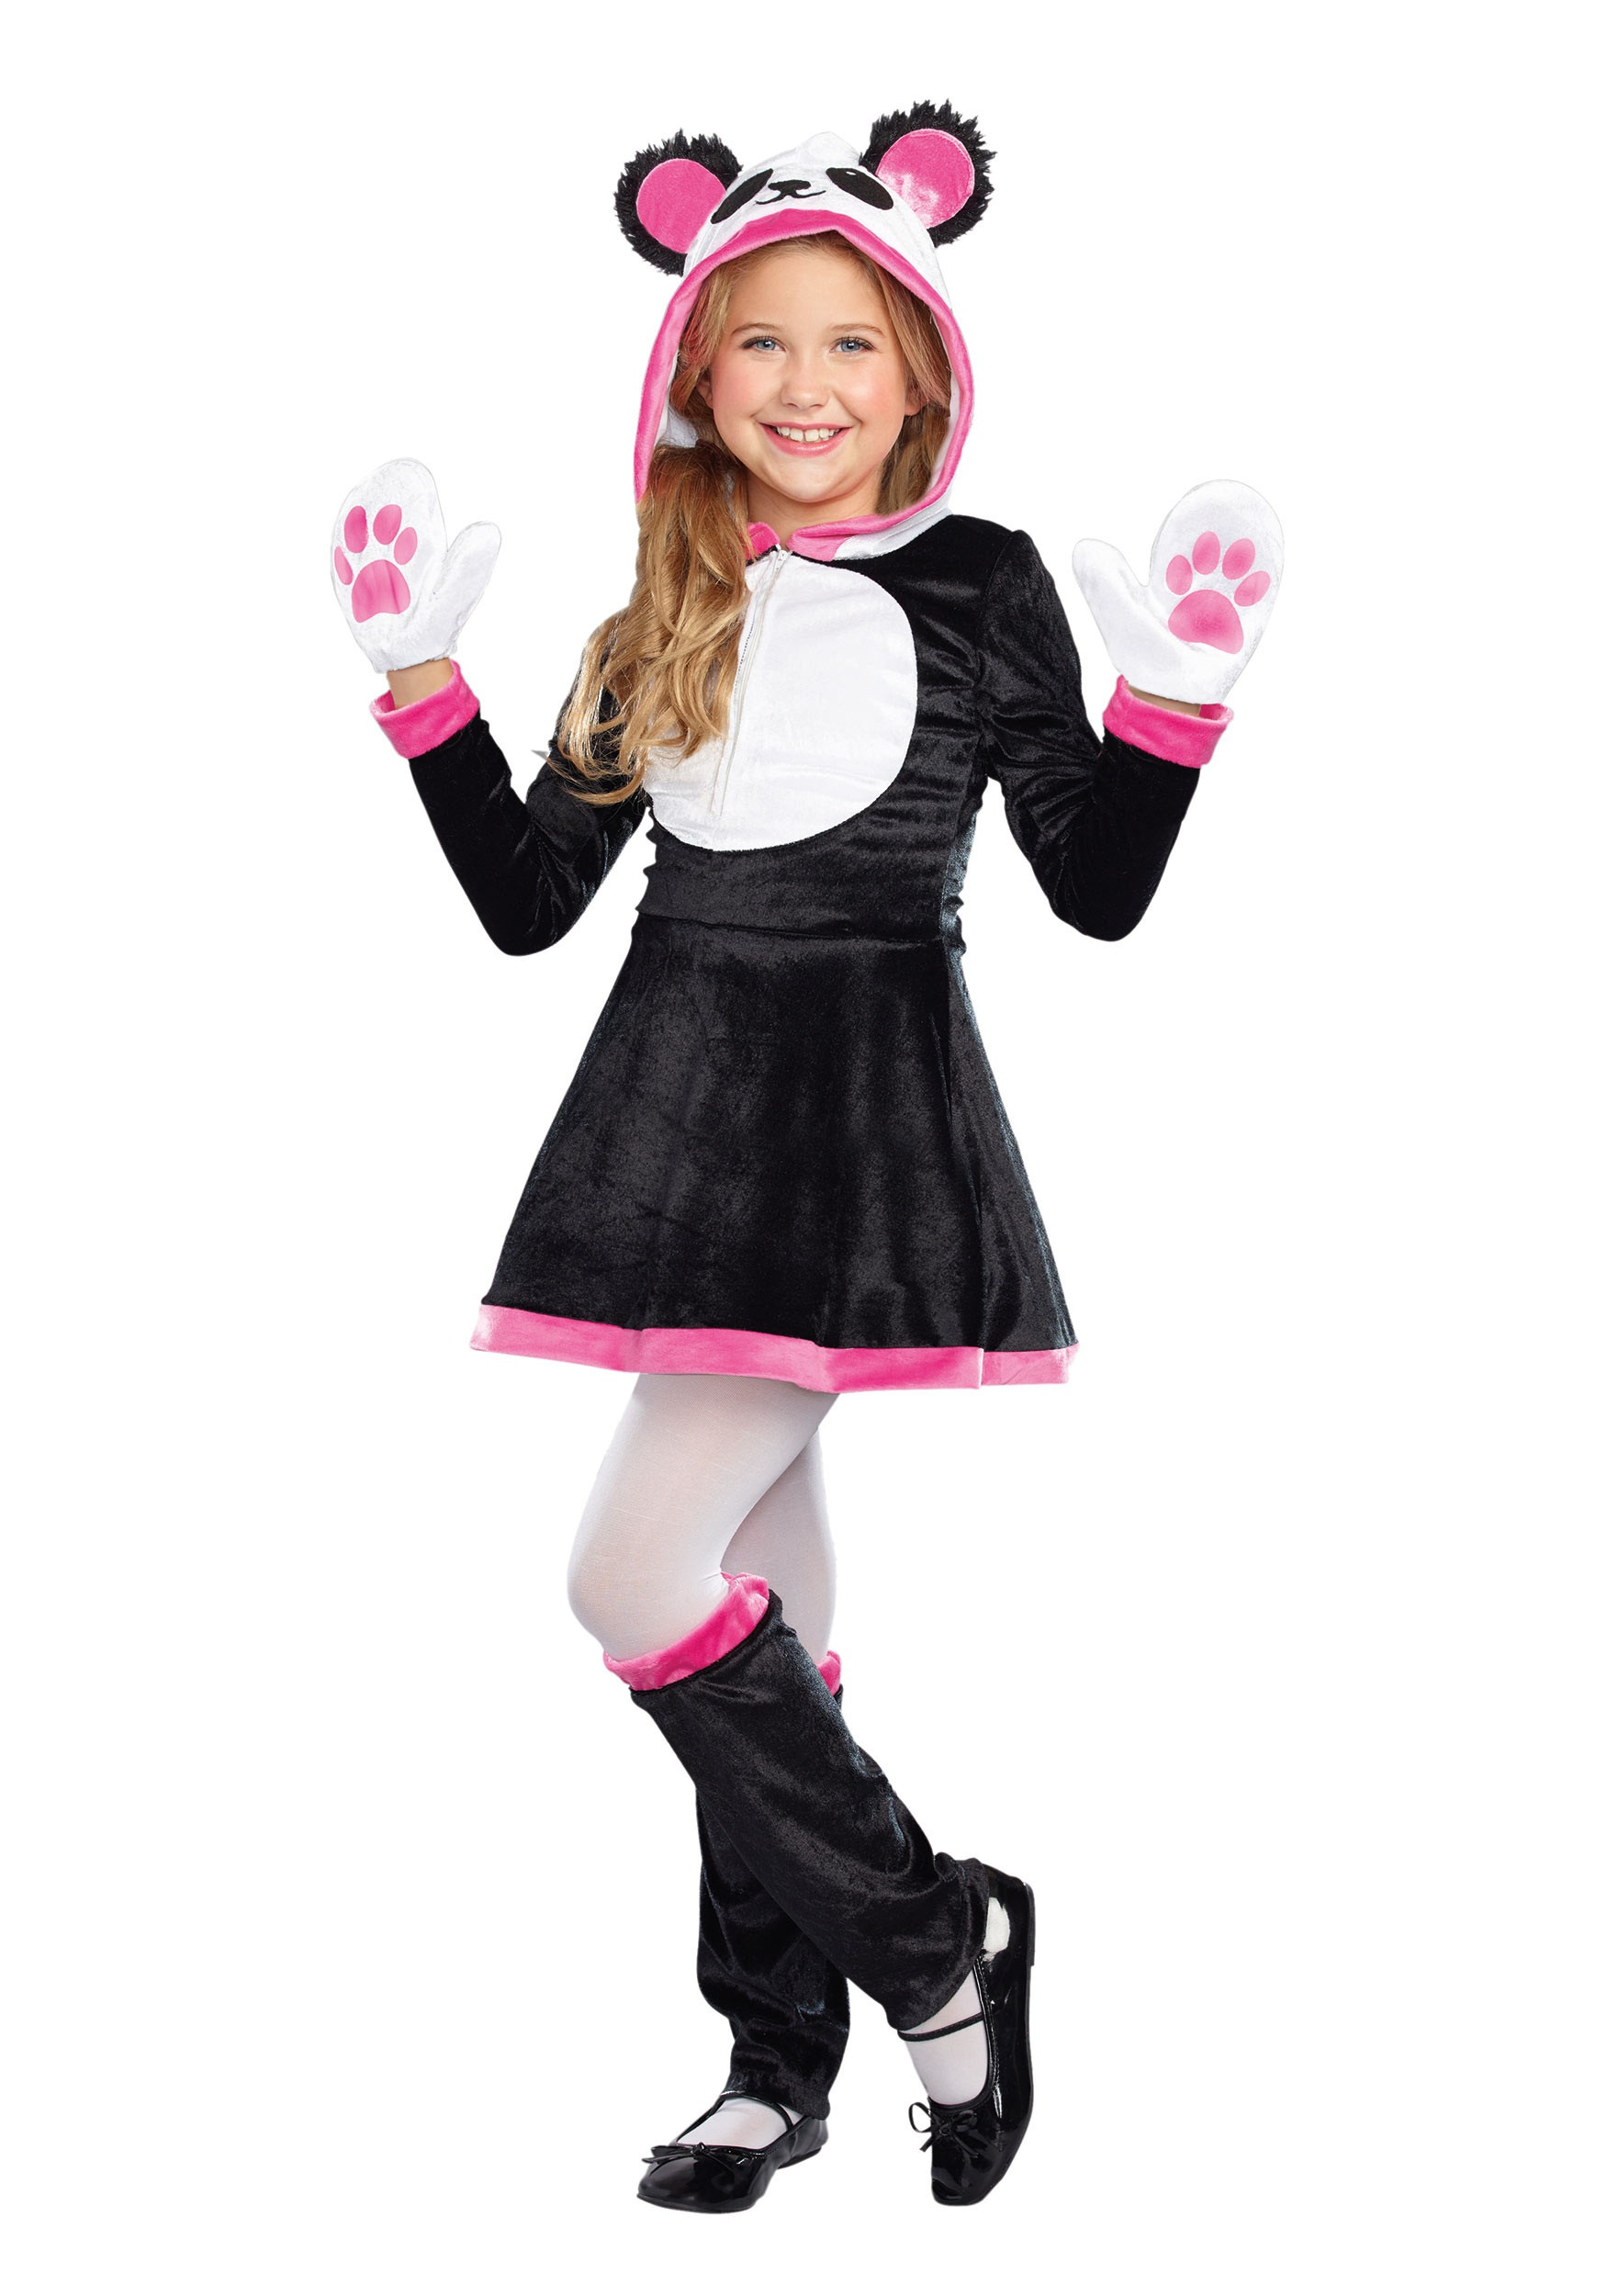 Best ideas about DIY Costumes For Girls . Save or Pin Girls Panda Cutie Costume Now.